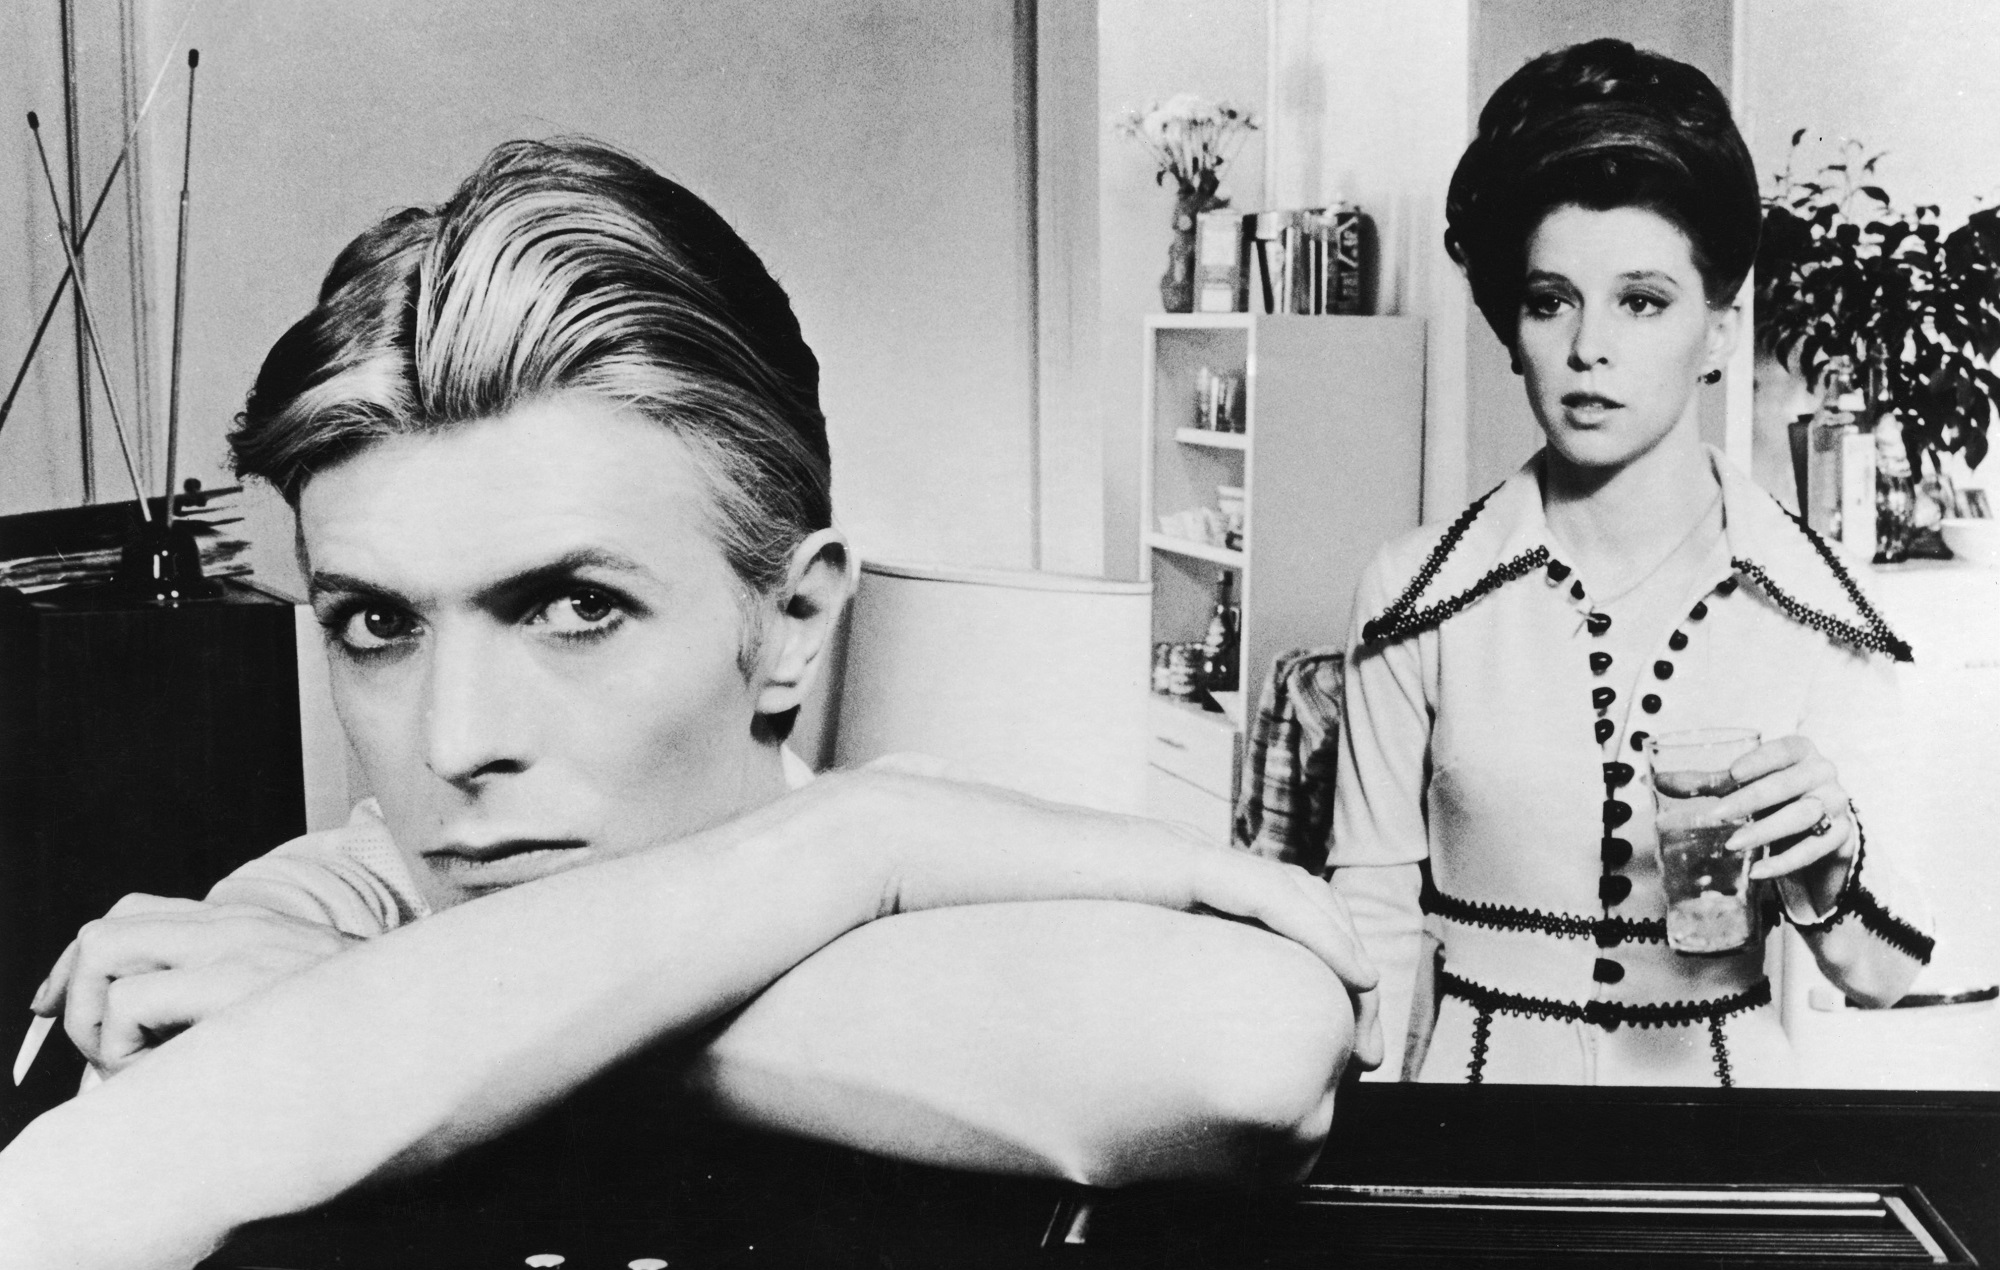 David Bowie stars with Candy Clark in 'The Man Who Fell to Earth'